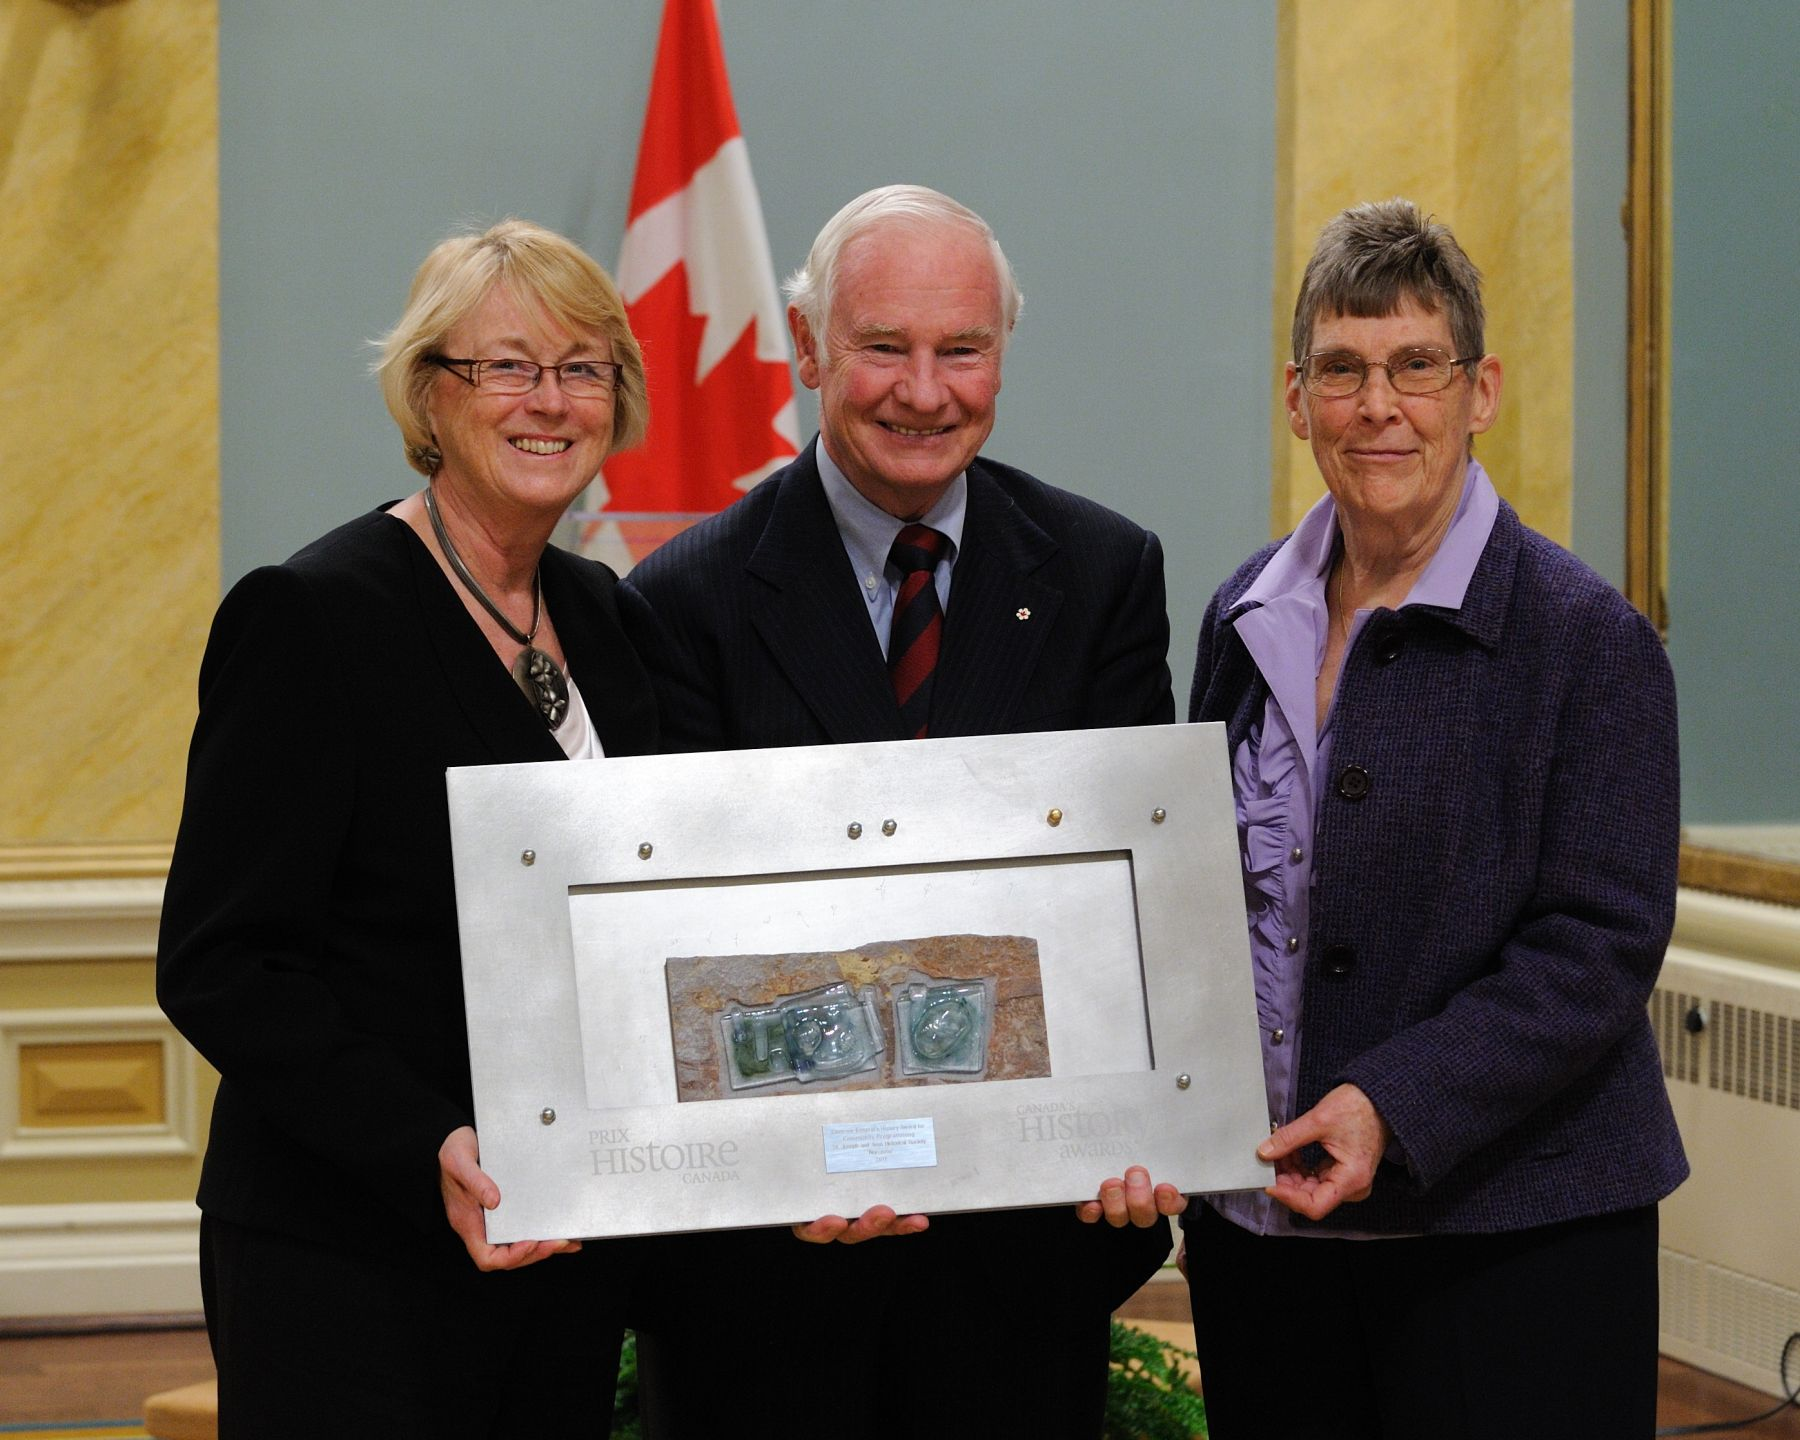 His Excellency awarded the Governor General's History Awards for Excellence in Community Programming to Joan Karstens and Pat Rowe of the St. Joseph and Area Historical Society for Narcisse, a play recounting the story of one of Huron County's most colourful residents, Narcisse Cantin.